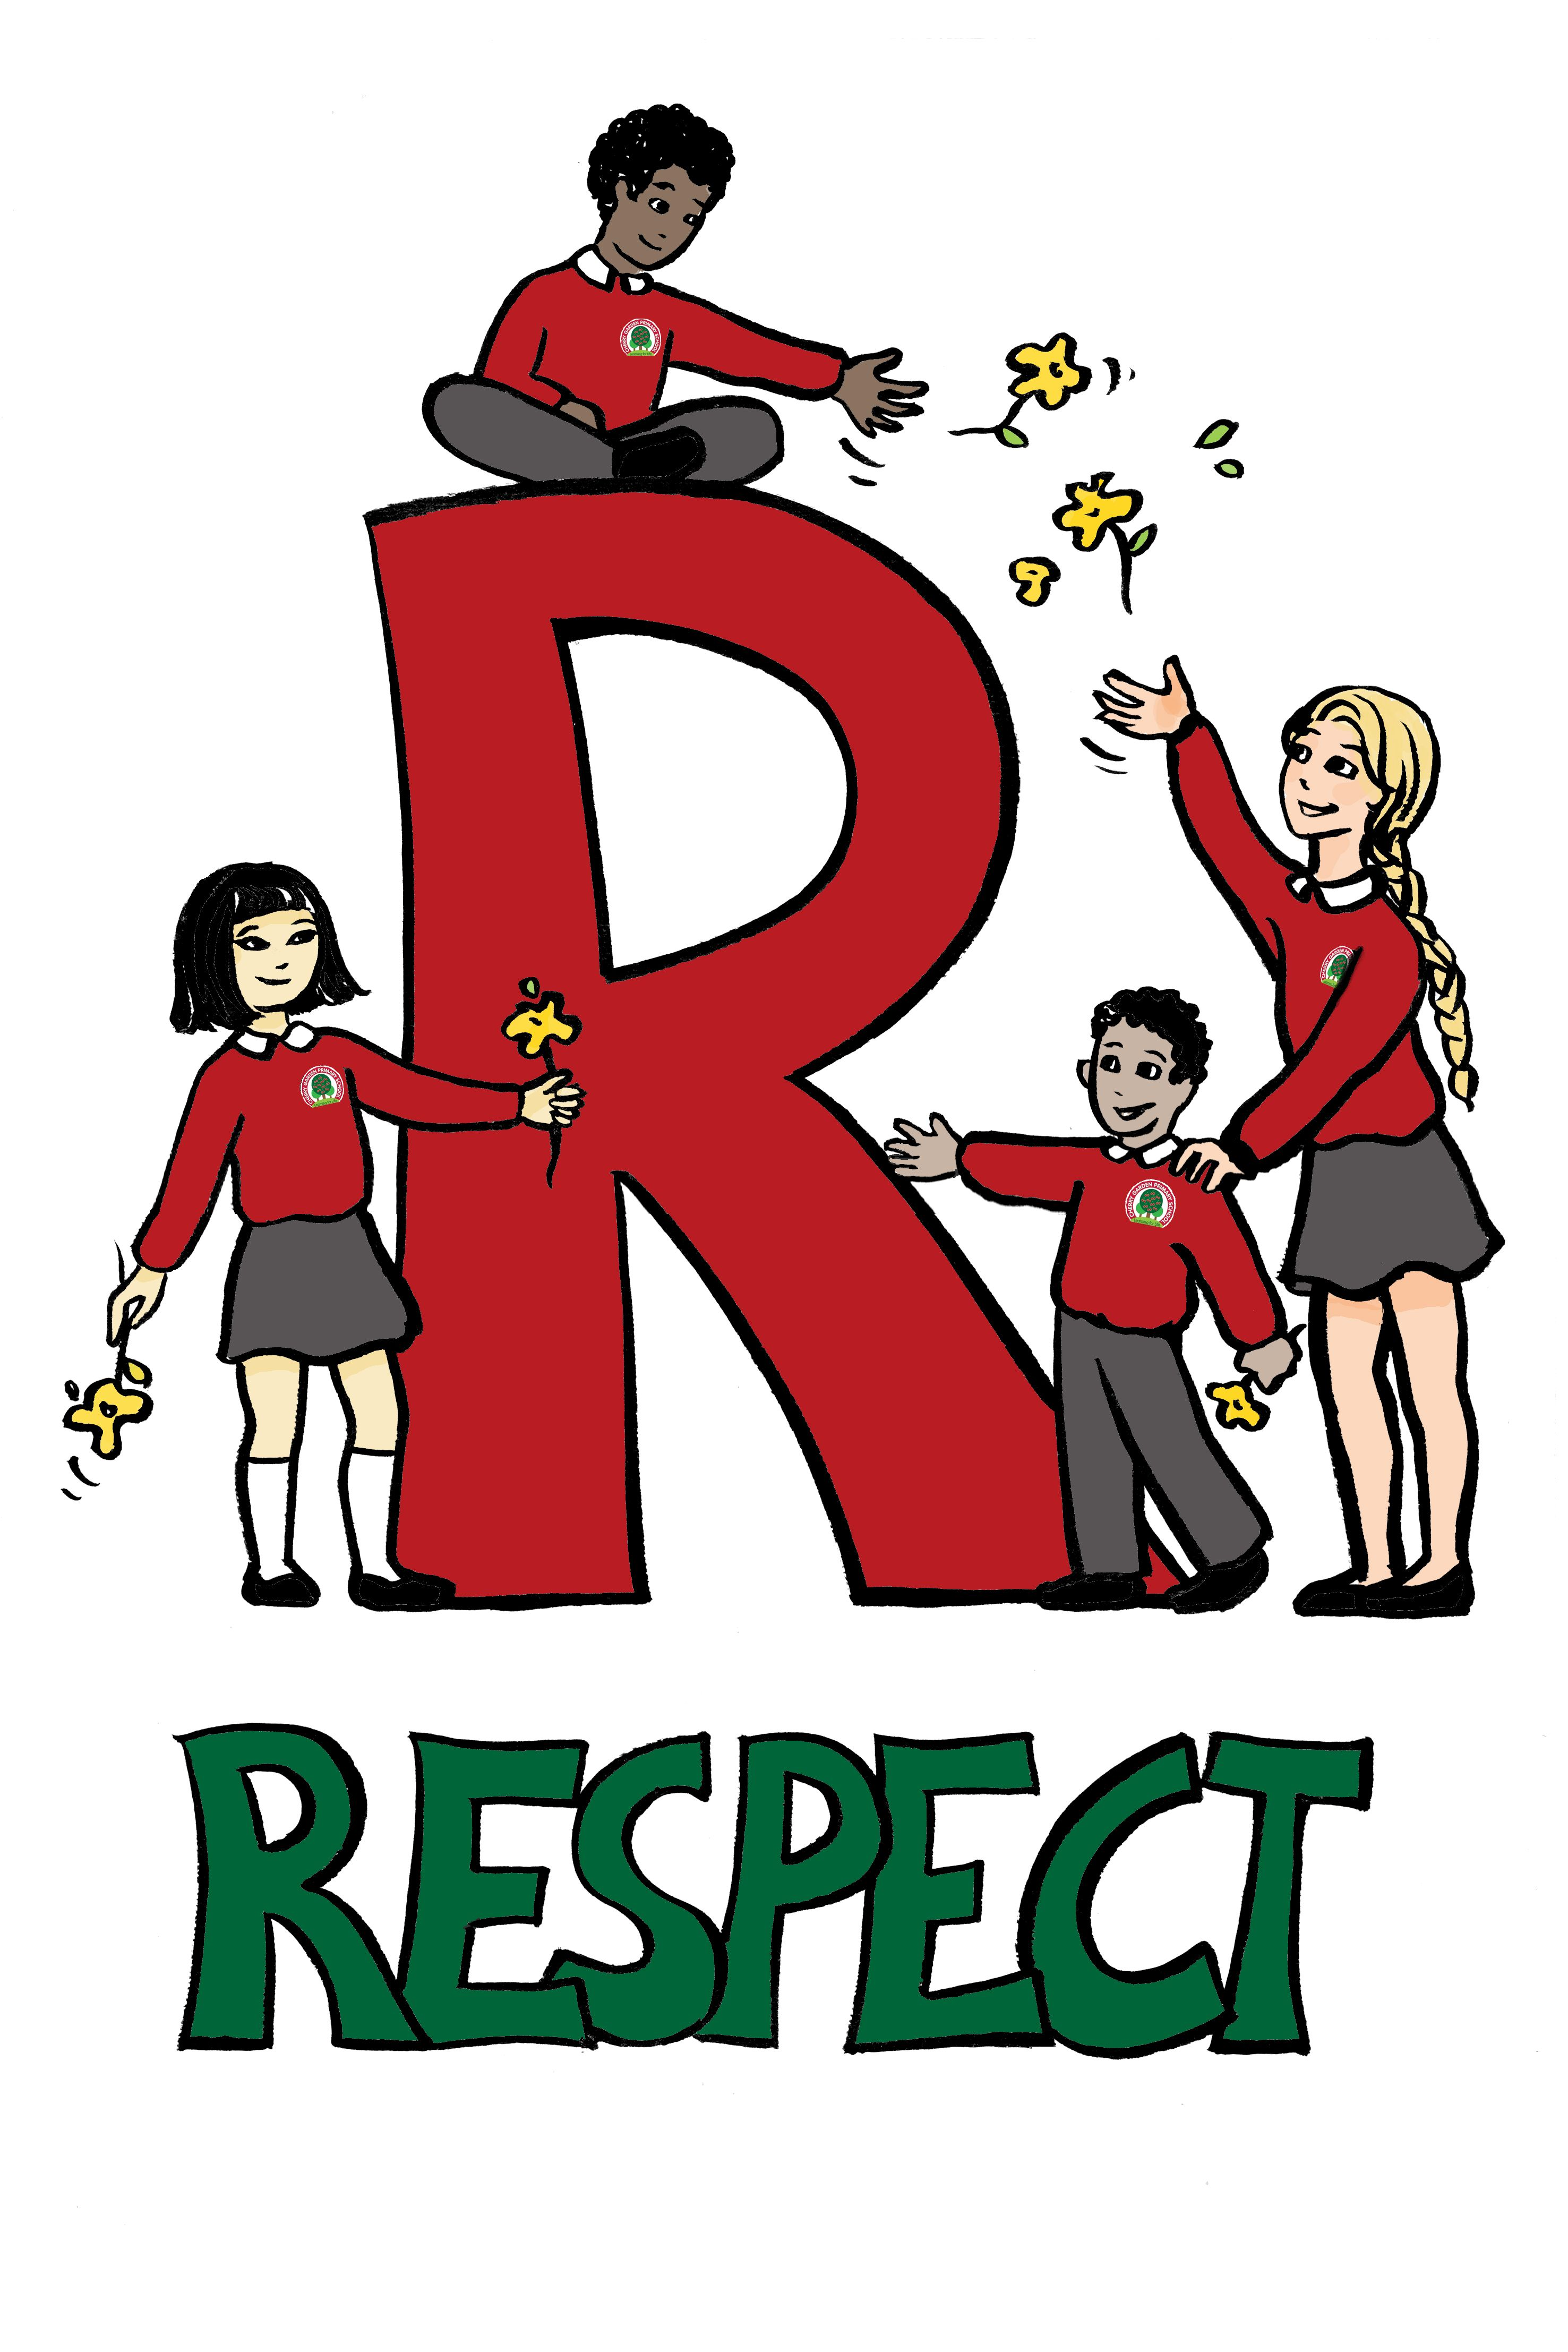 Showing Respect Clipart.